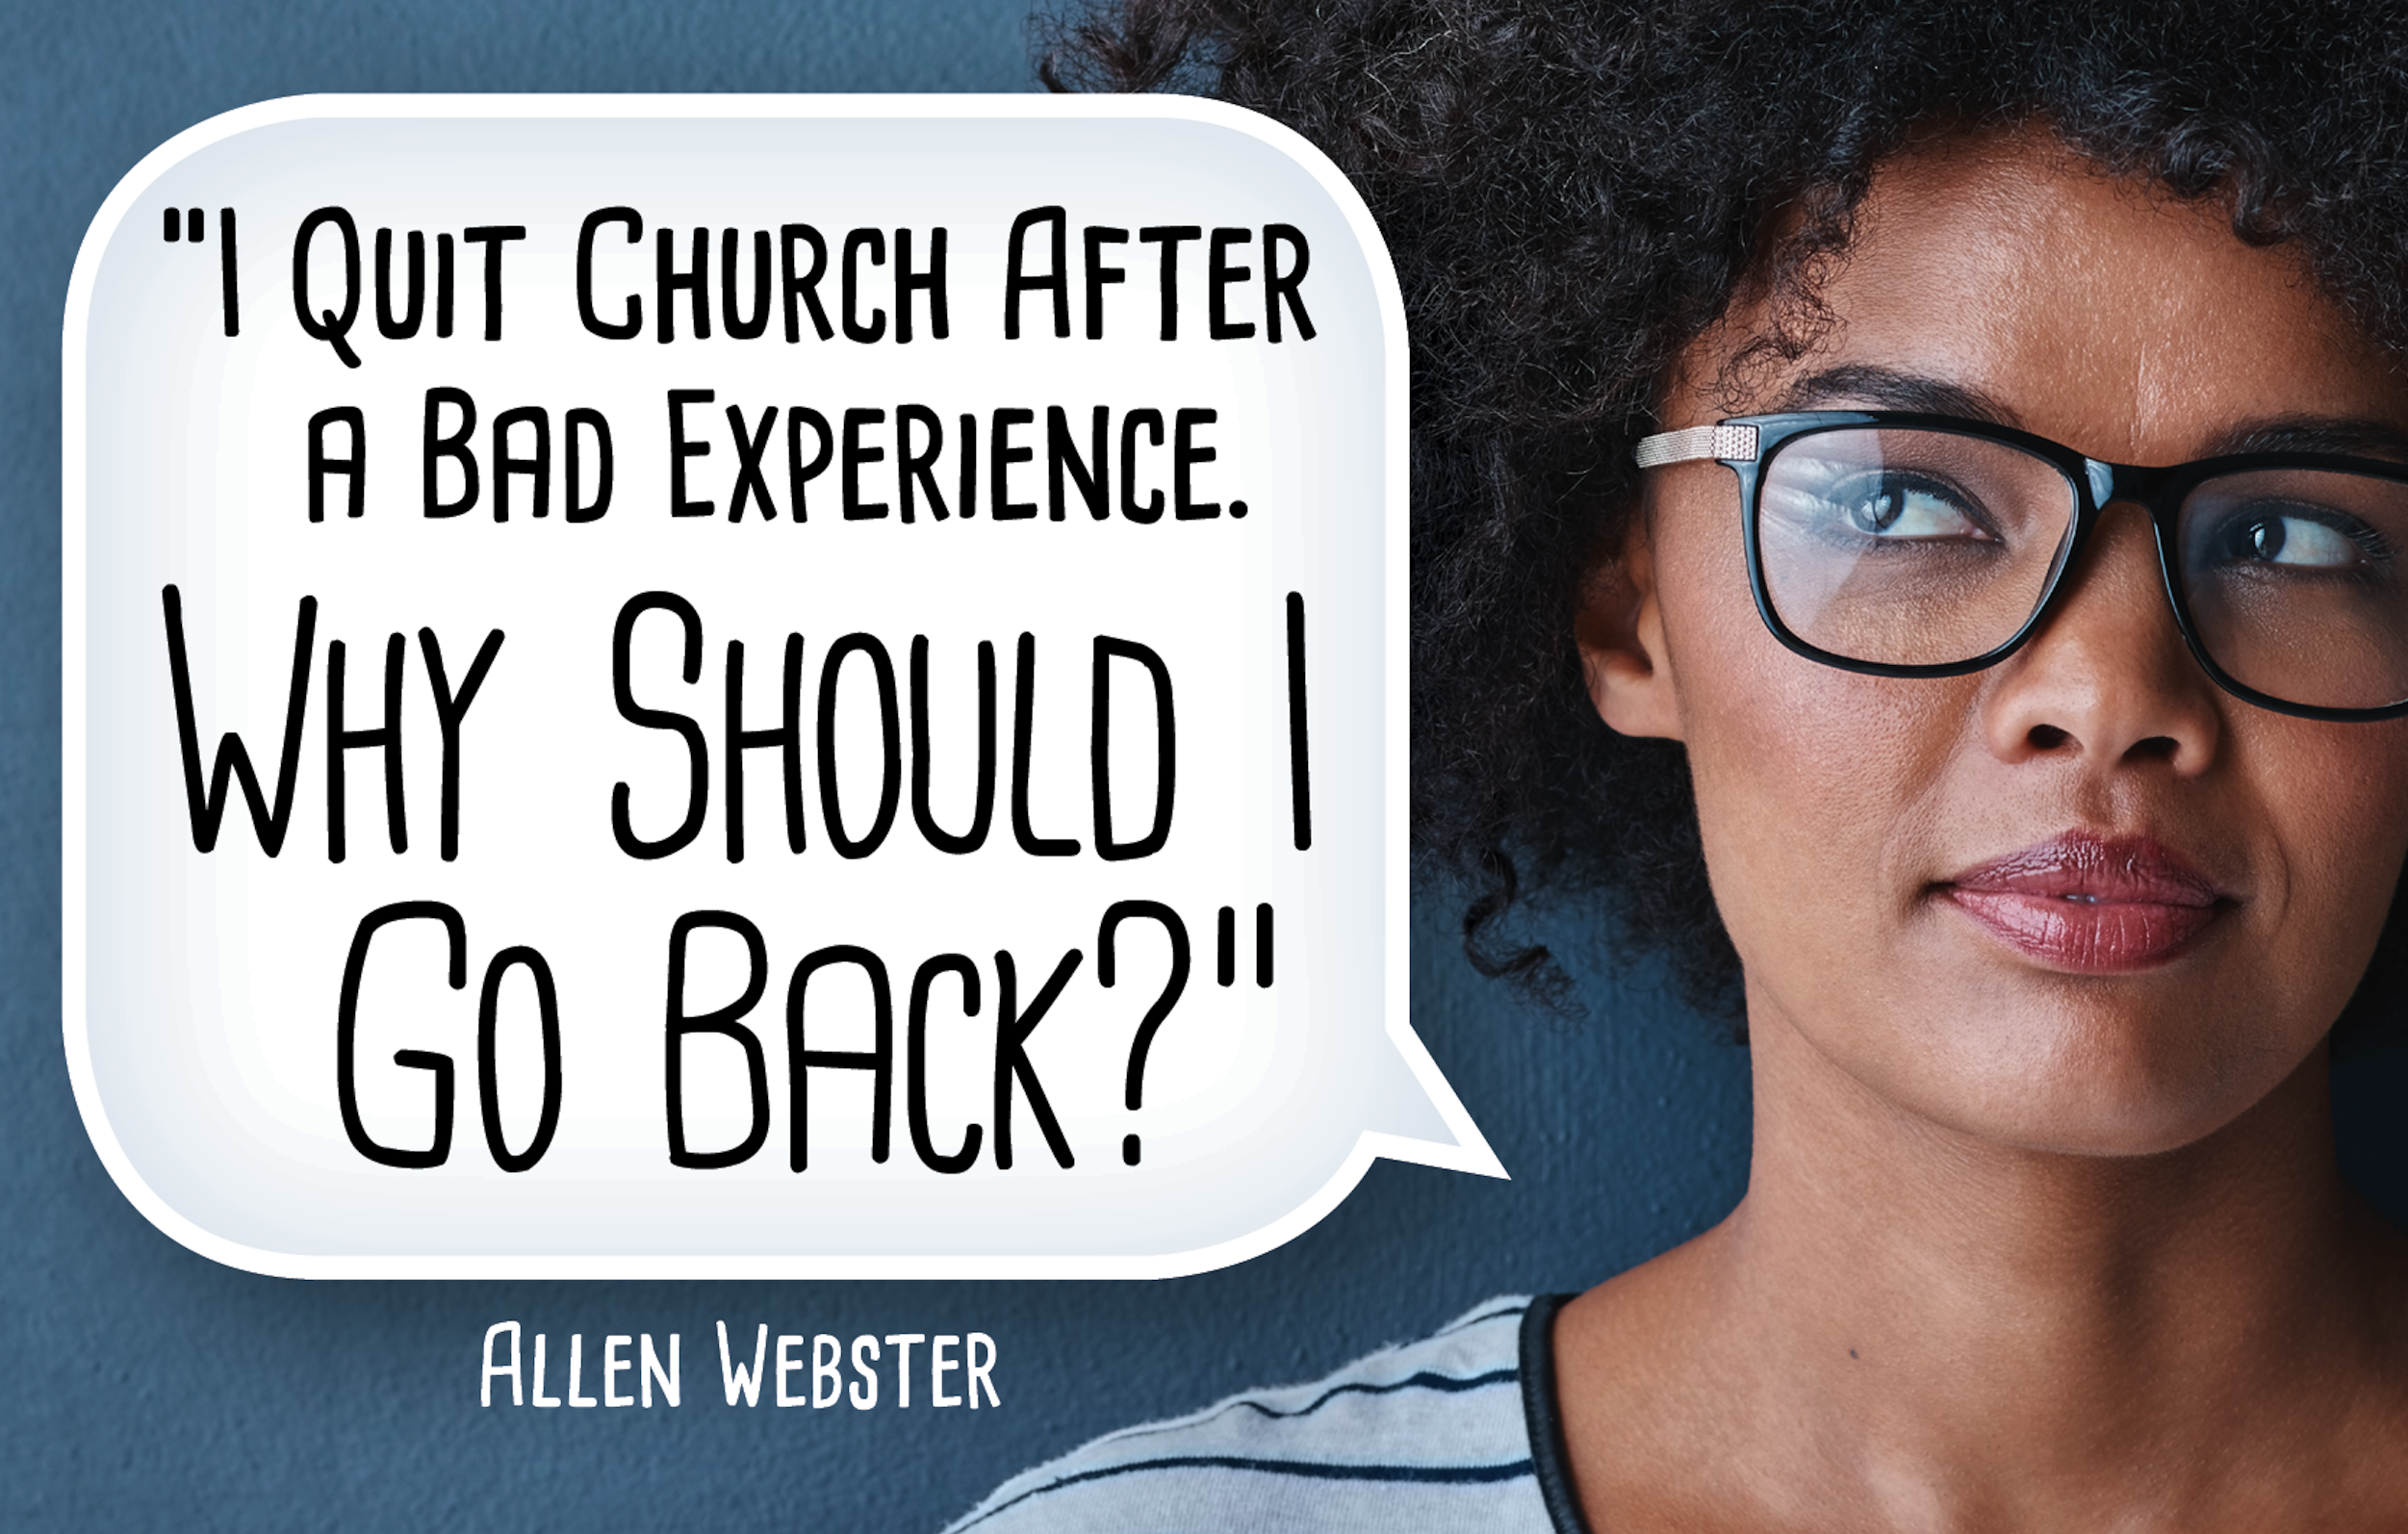 I Quit Church After a Bad Experience. Why Should I Go Back?